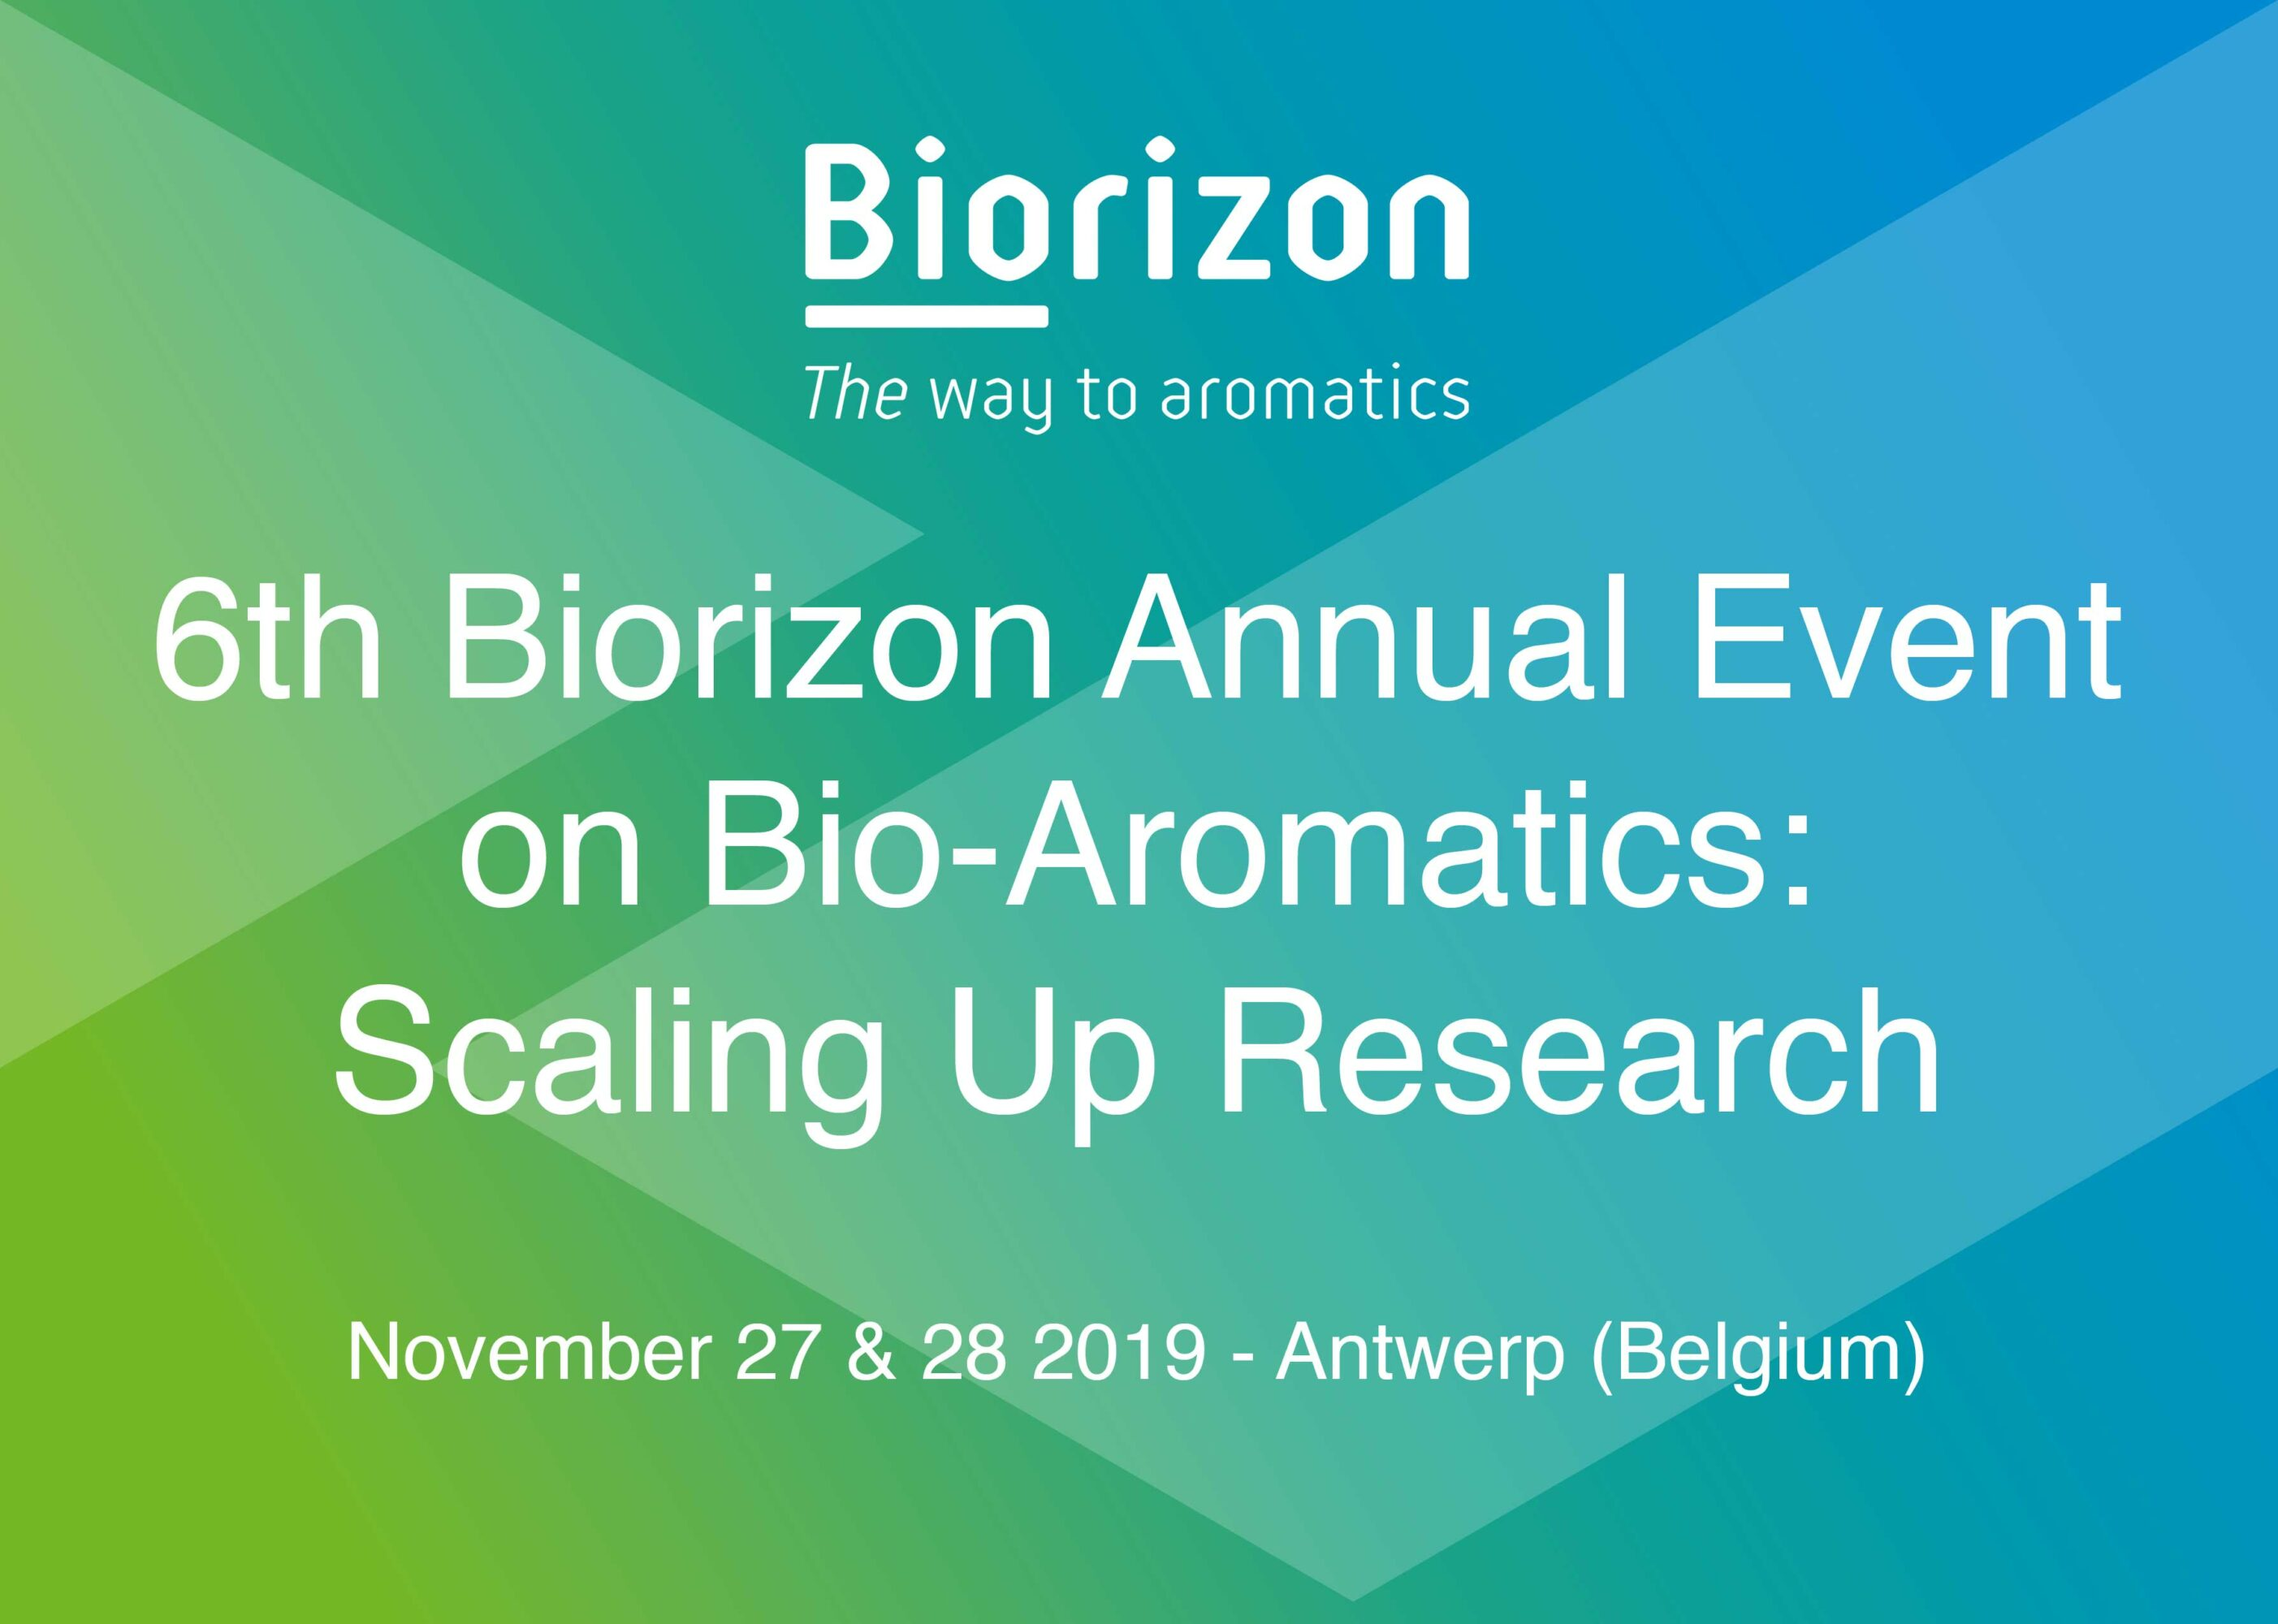 27 & 28 November 2019: 6th Biorizon Annual Event on Bio-Aromatics: Scaling Up Research